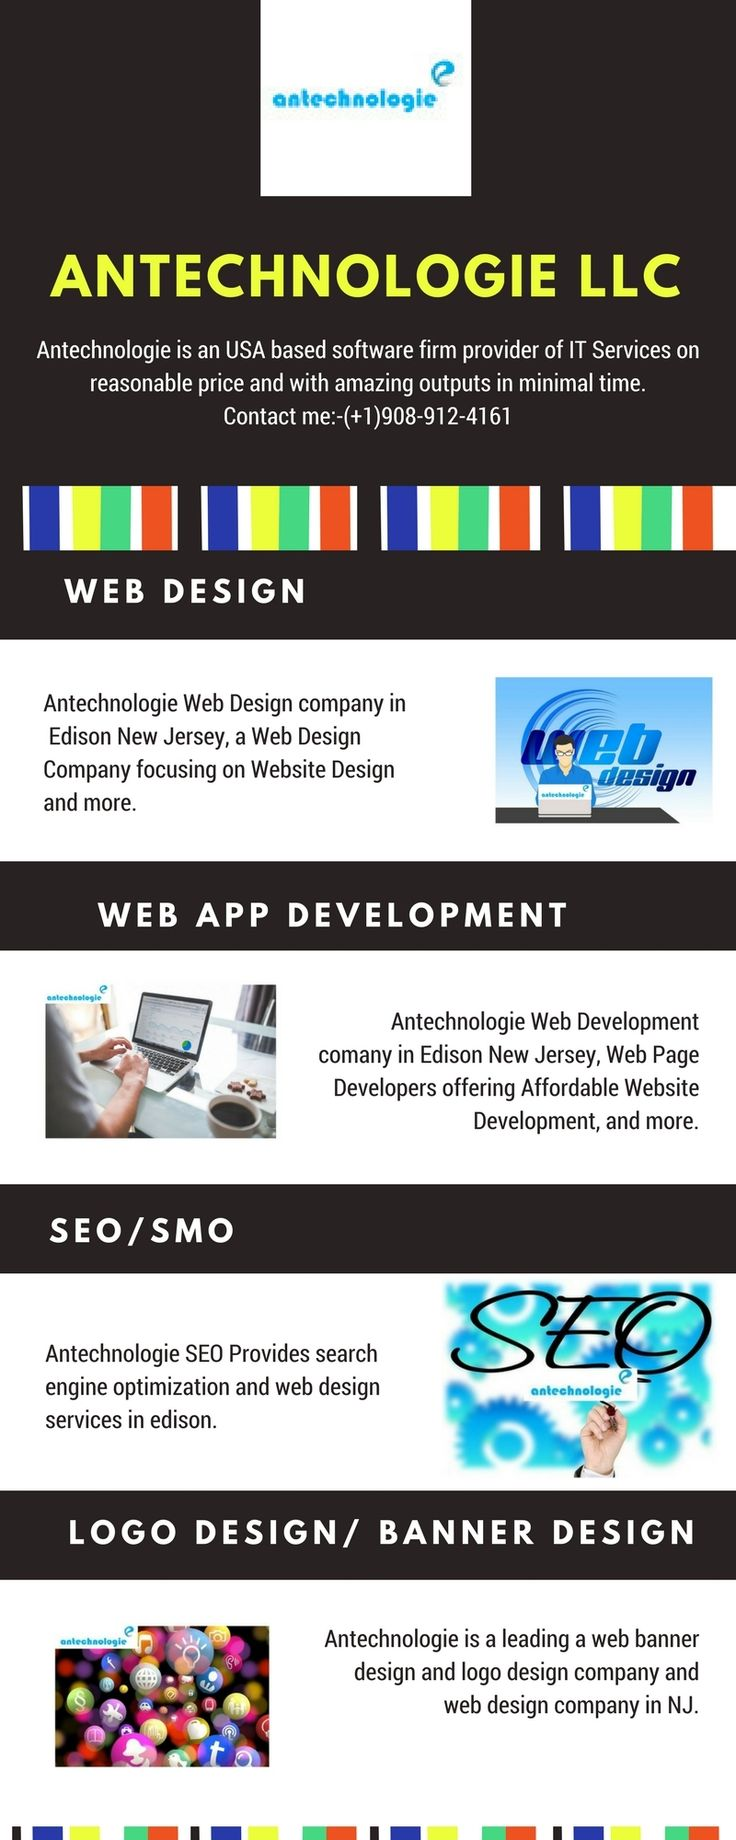 Antechnologie is a web design and web development ,logo deisgn company in Edison .Contact now:- (+1)908-912-4161 .Get more information visit the website:- www.antechnologie.com